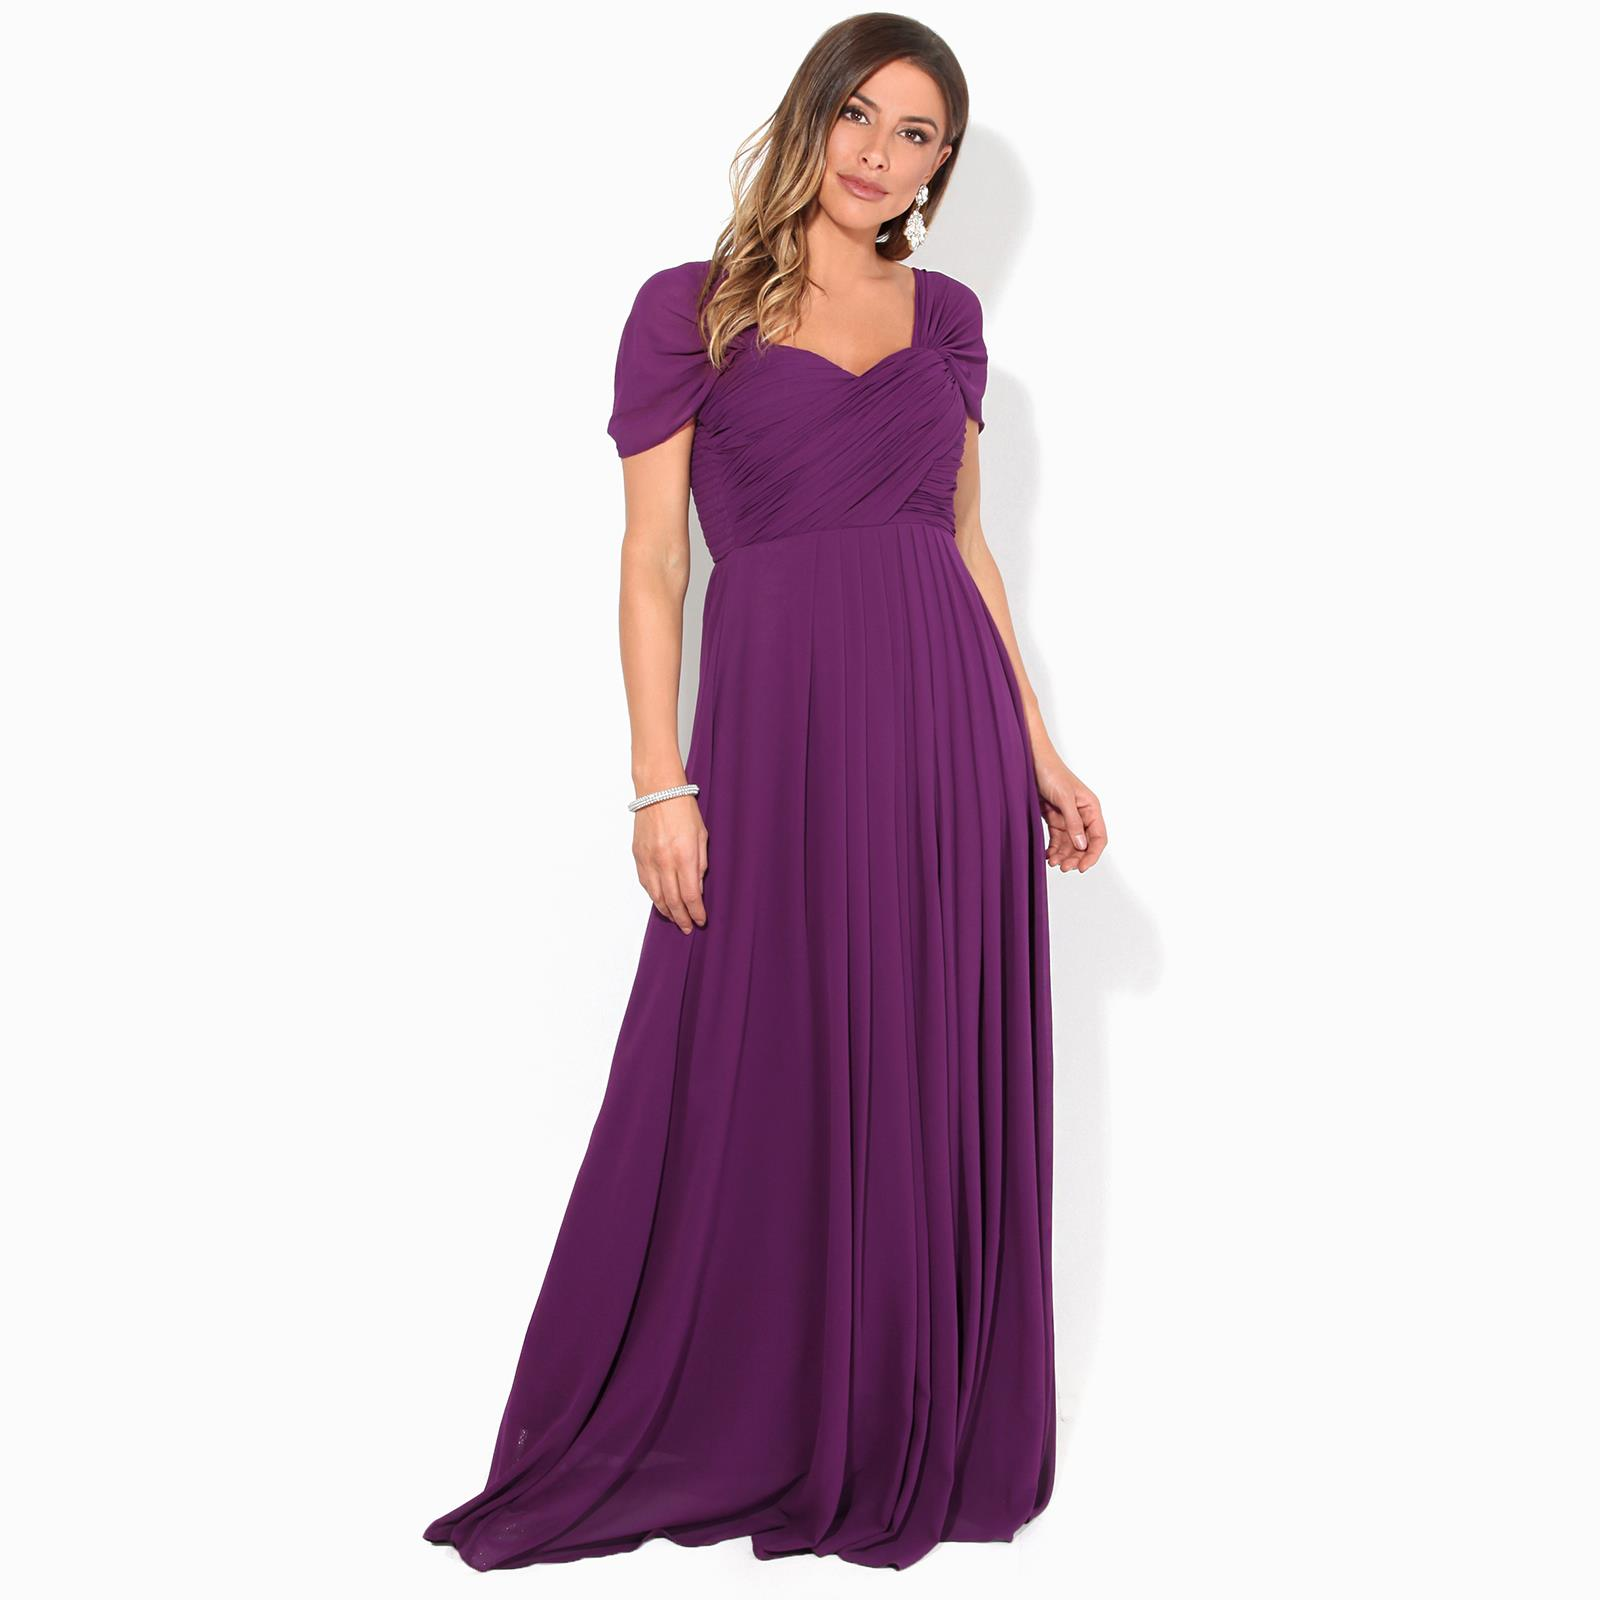 Women-Formal-Dress-Evening-Wedding-Ball-Long-Gown-Maxi-Prom-On-Off-Shoulder-8-18 thumbnail 53